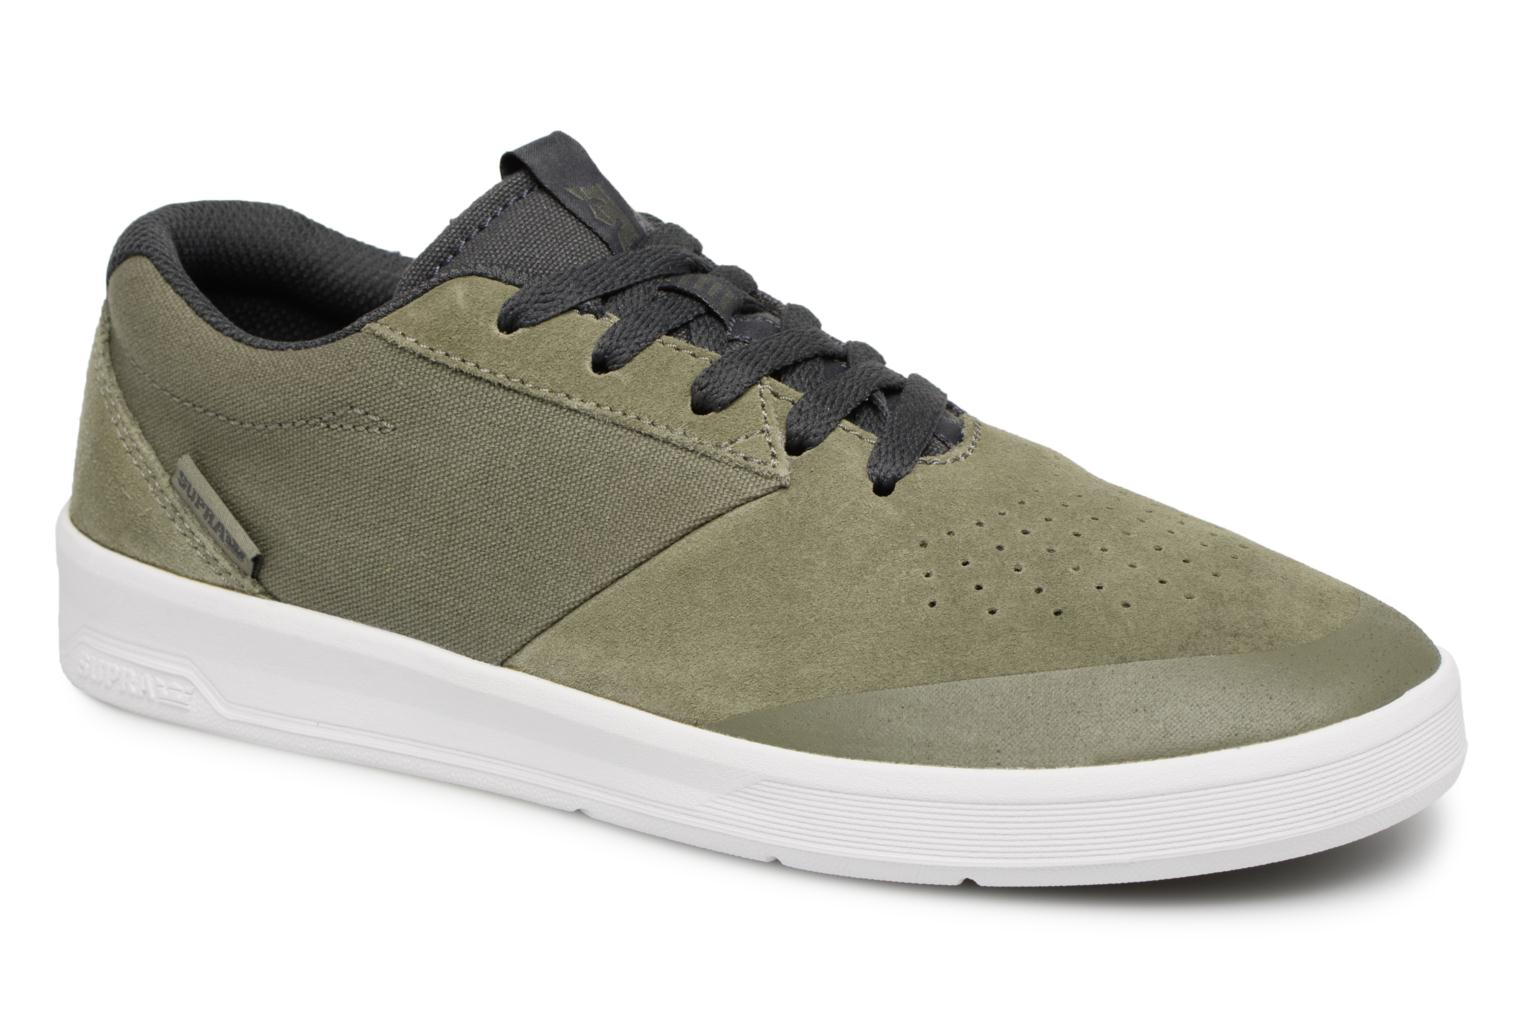 Marques Chaussure homme Supra homme SHIFTER OLIVE / GREY - WHITE-M